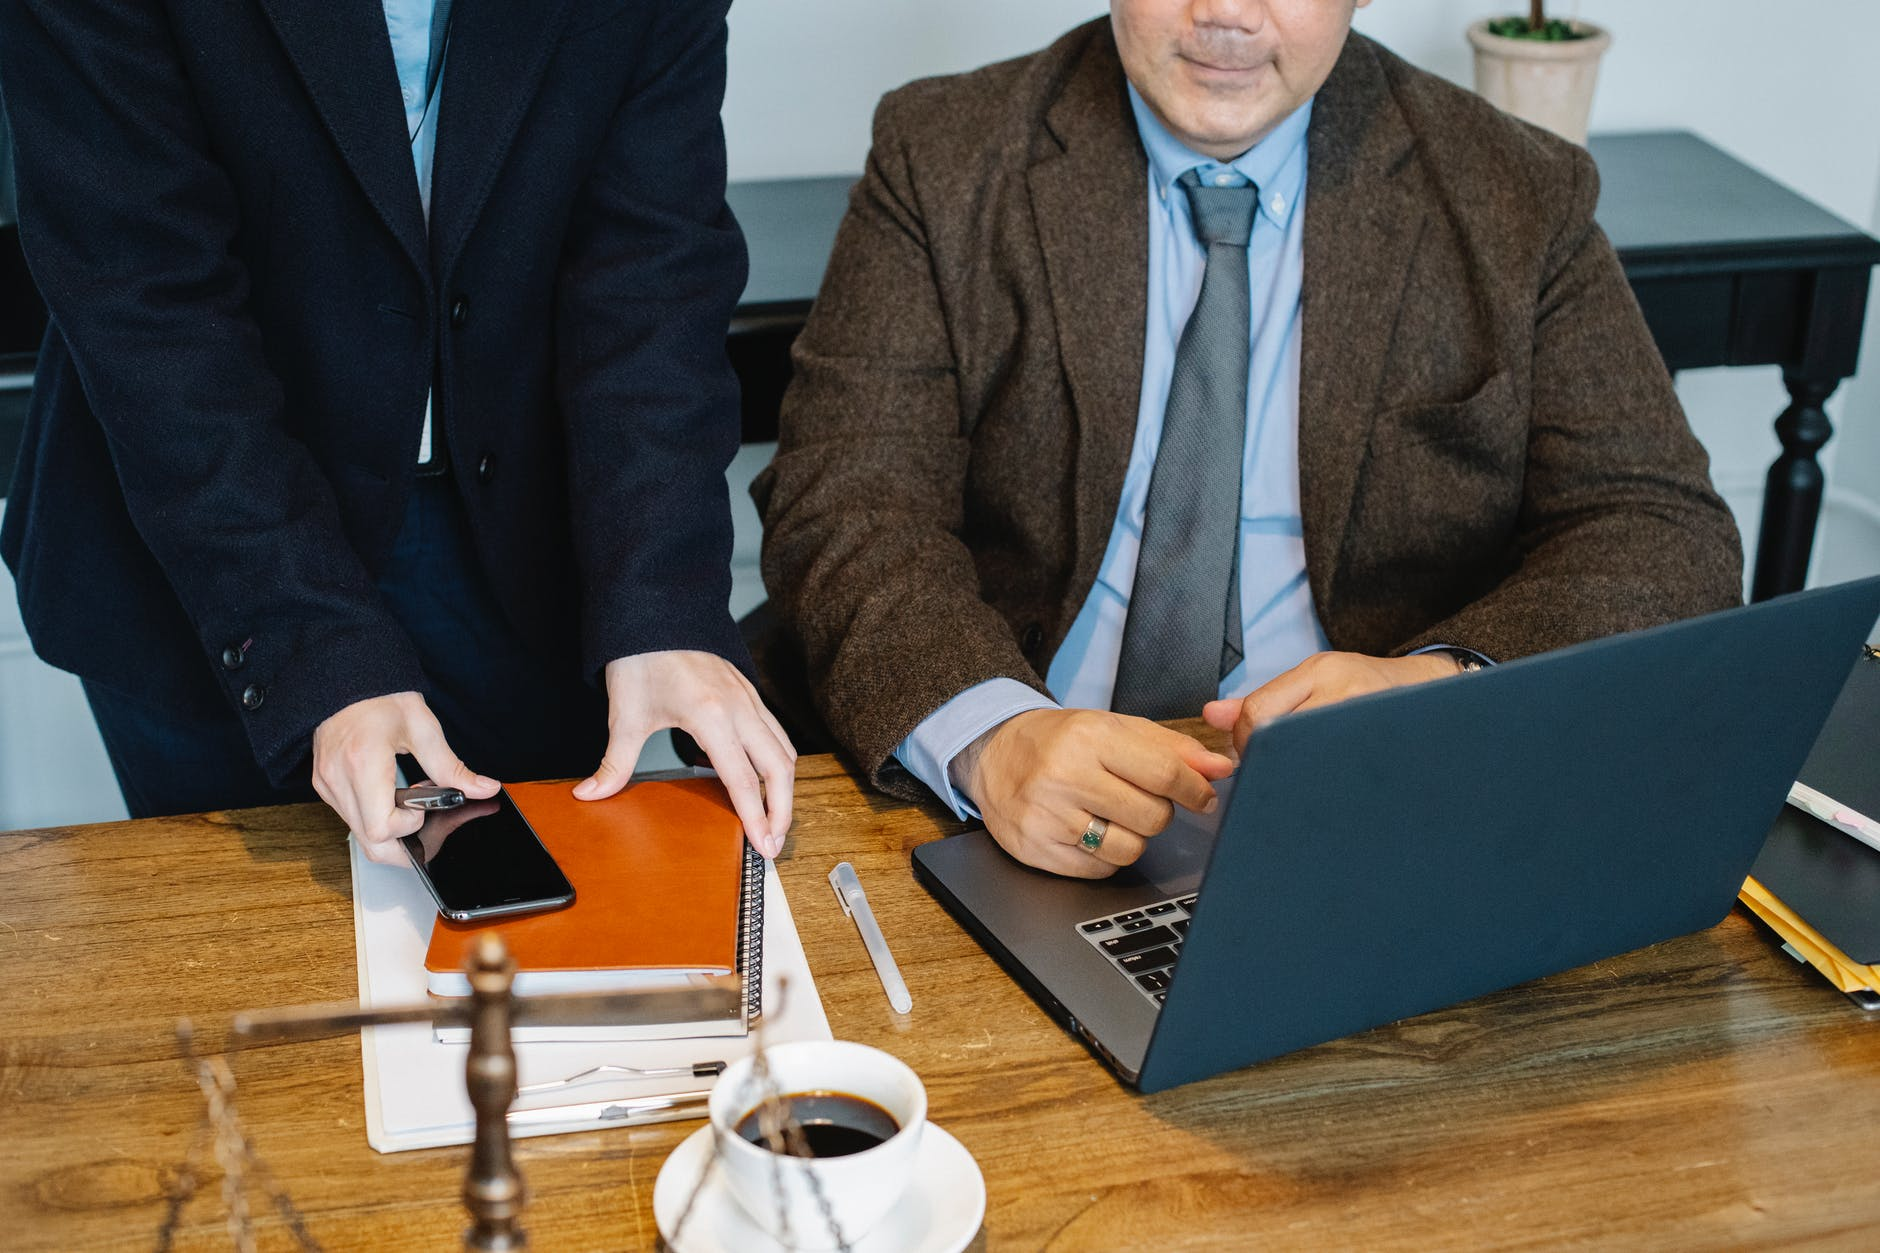 crop colleagues gathering at table with laptop in office